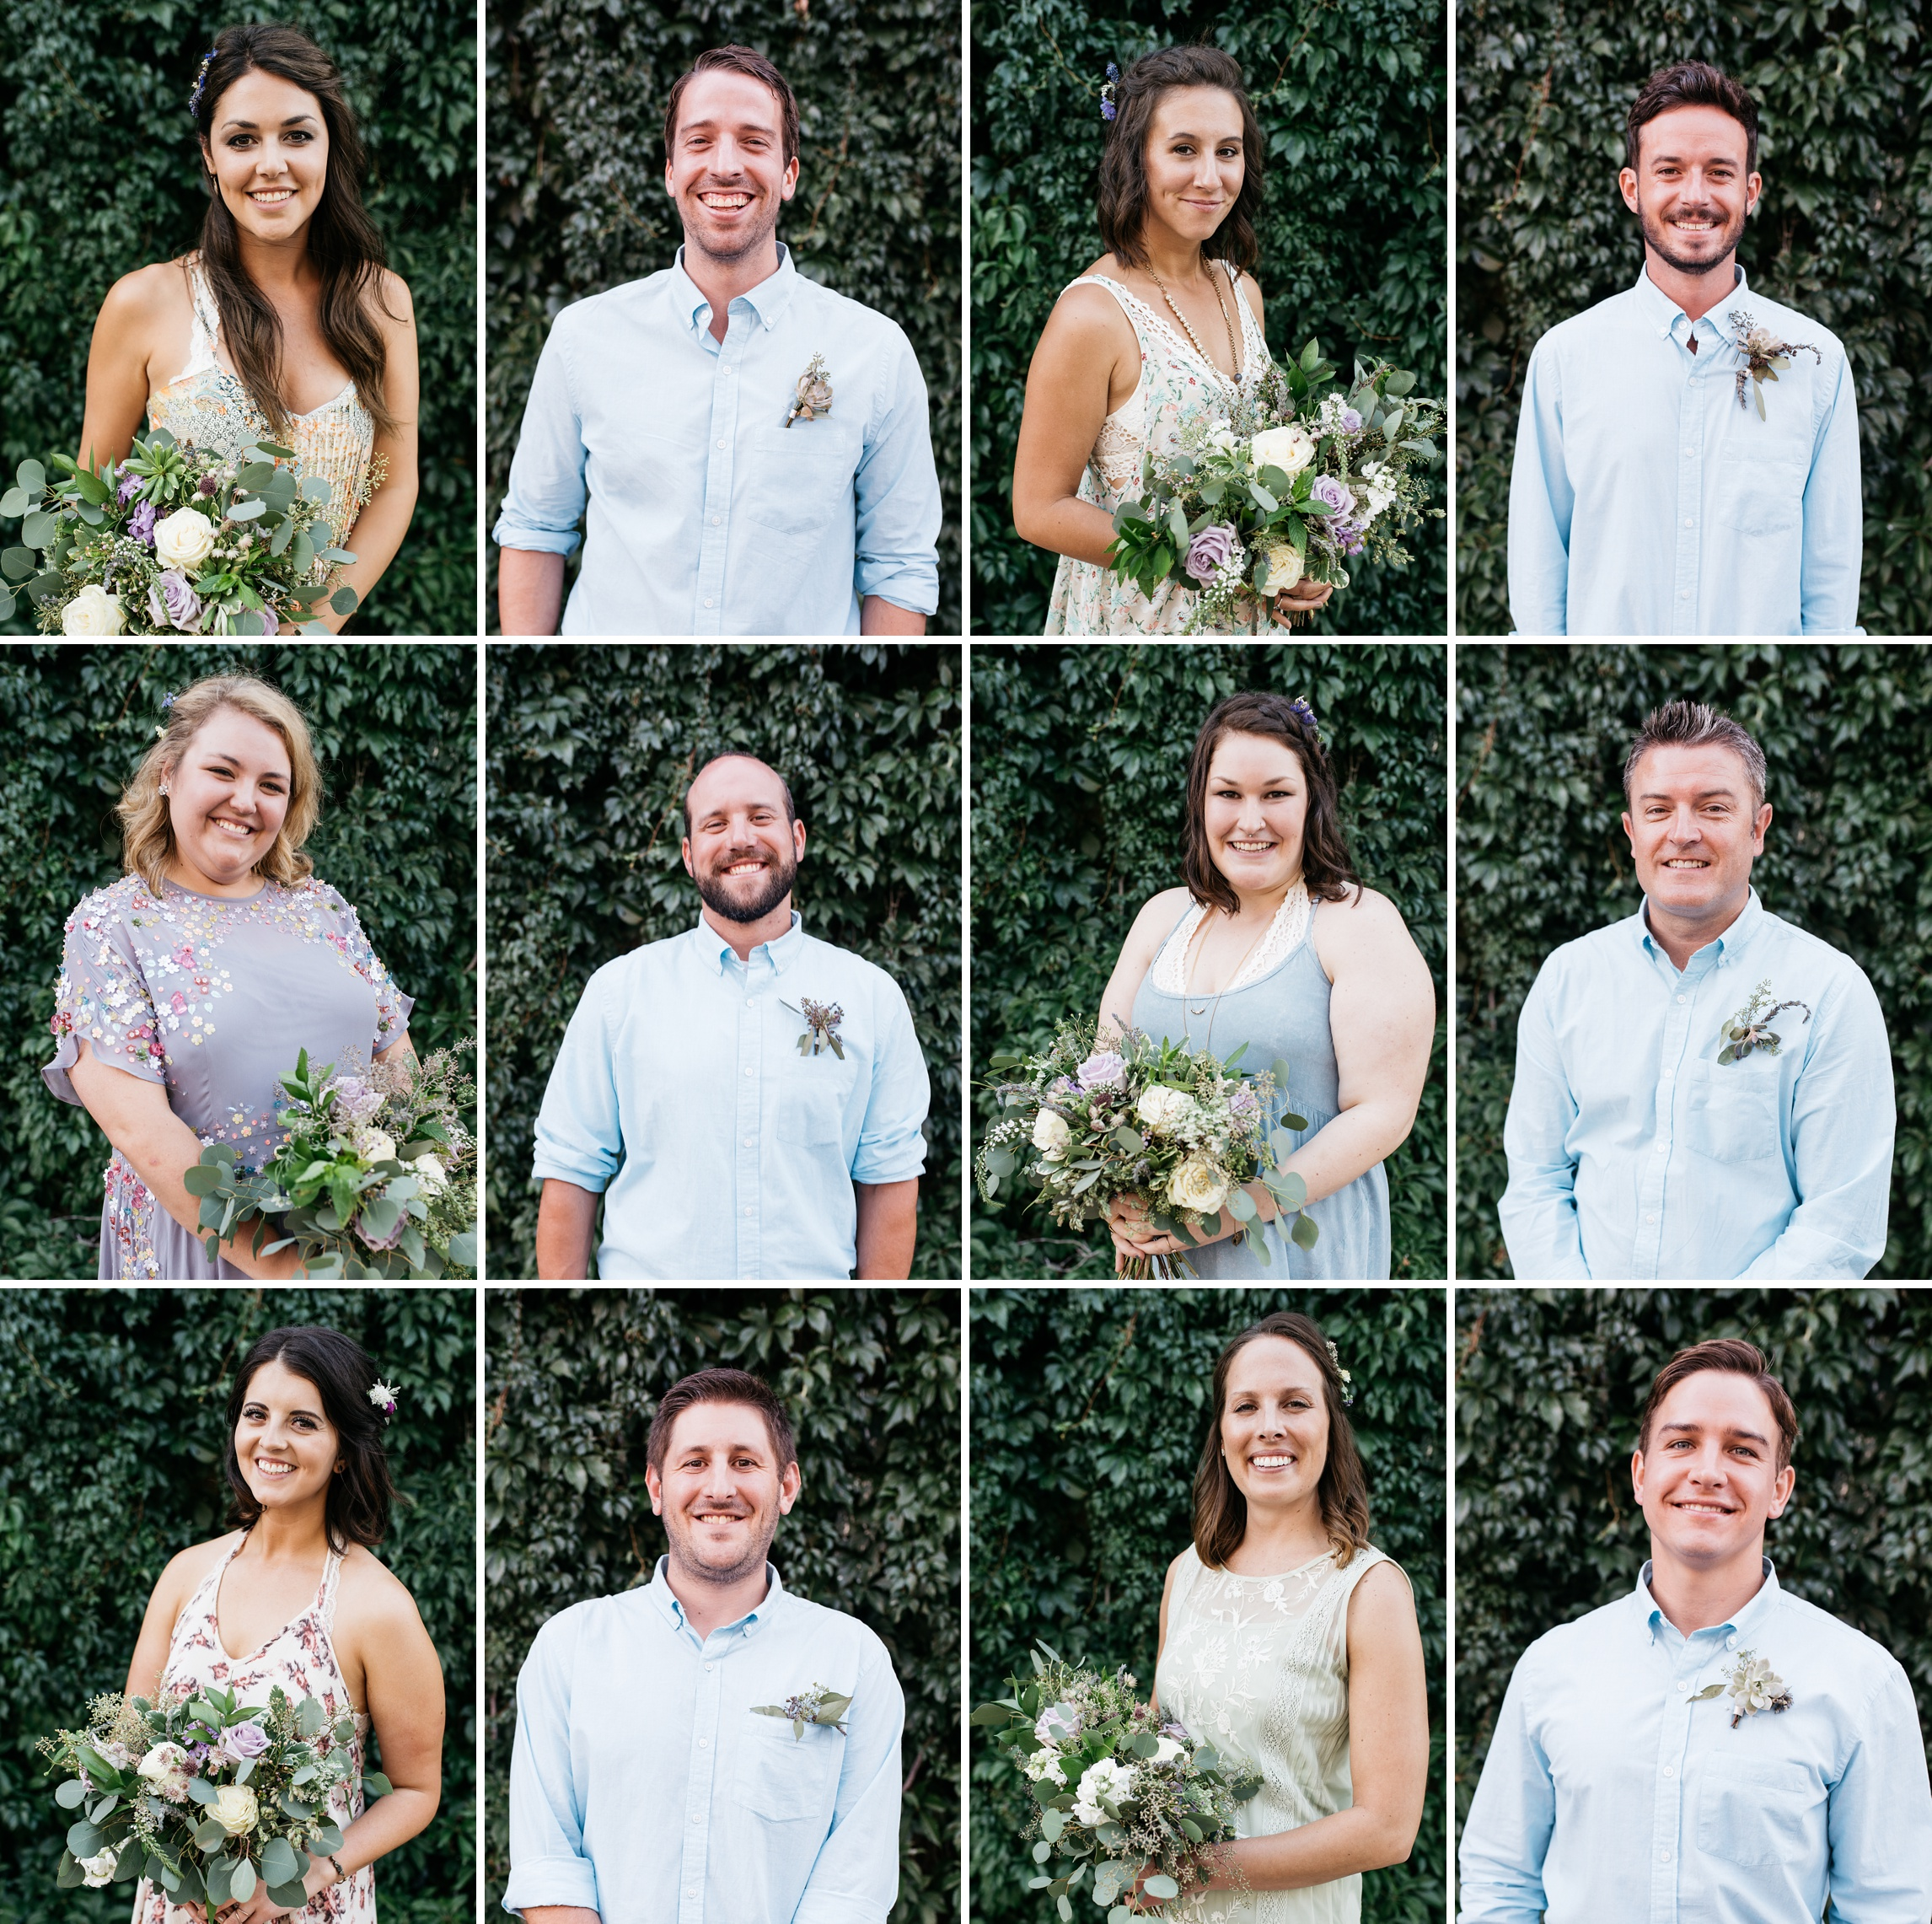 Head shots of the bridal party at an outdoor Colorado wedding in Old Town Fort Collins. Wedding photography by Sonja Salzburg of Sonja K Photography.